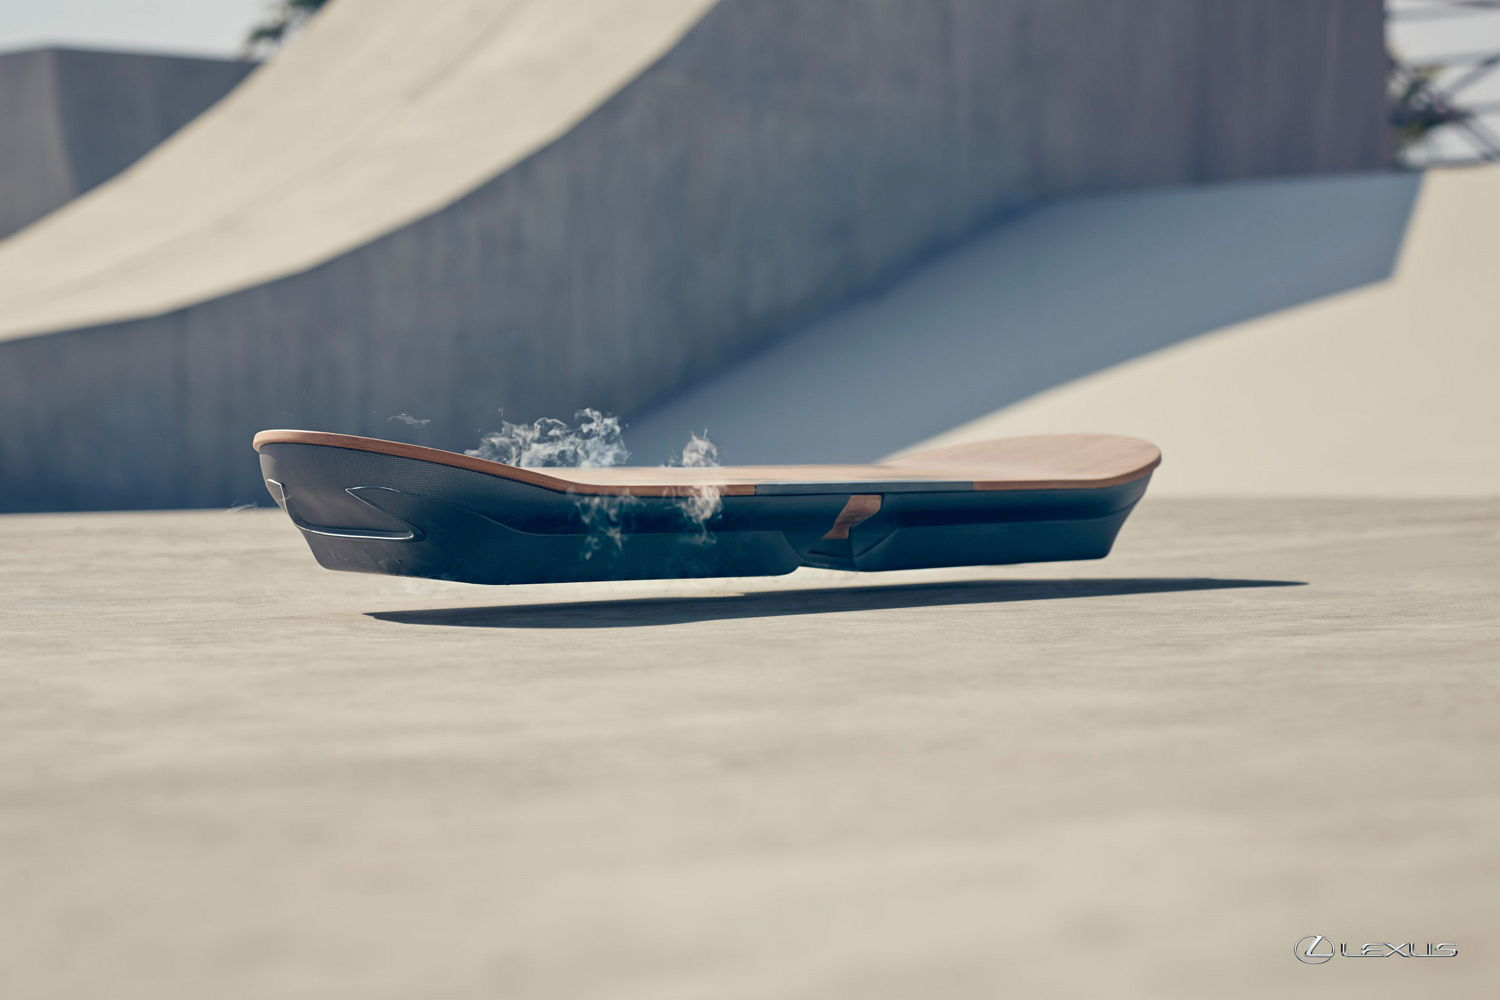 lexus baut ein hoverboard als prototypen video. Black Bedroom Furniture Sets. Home Design Ideas